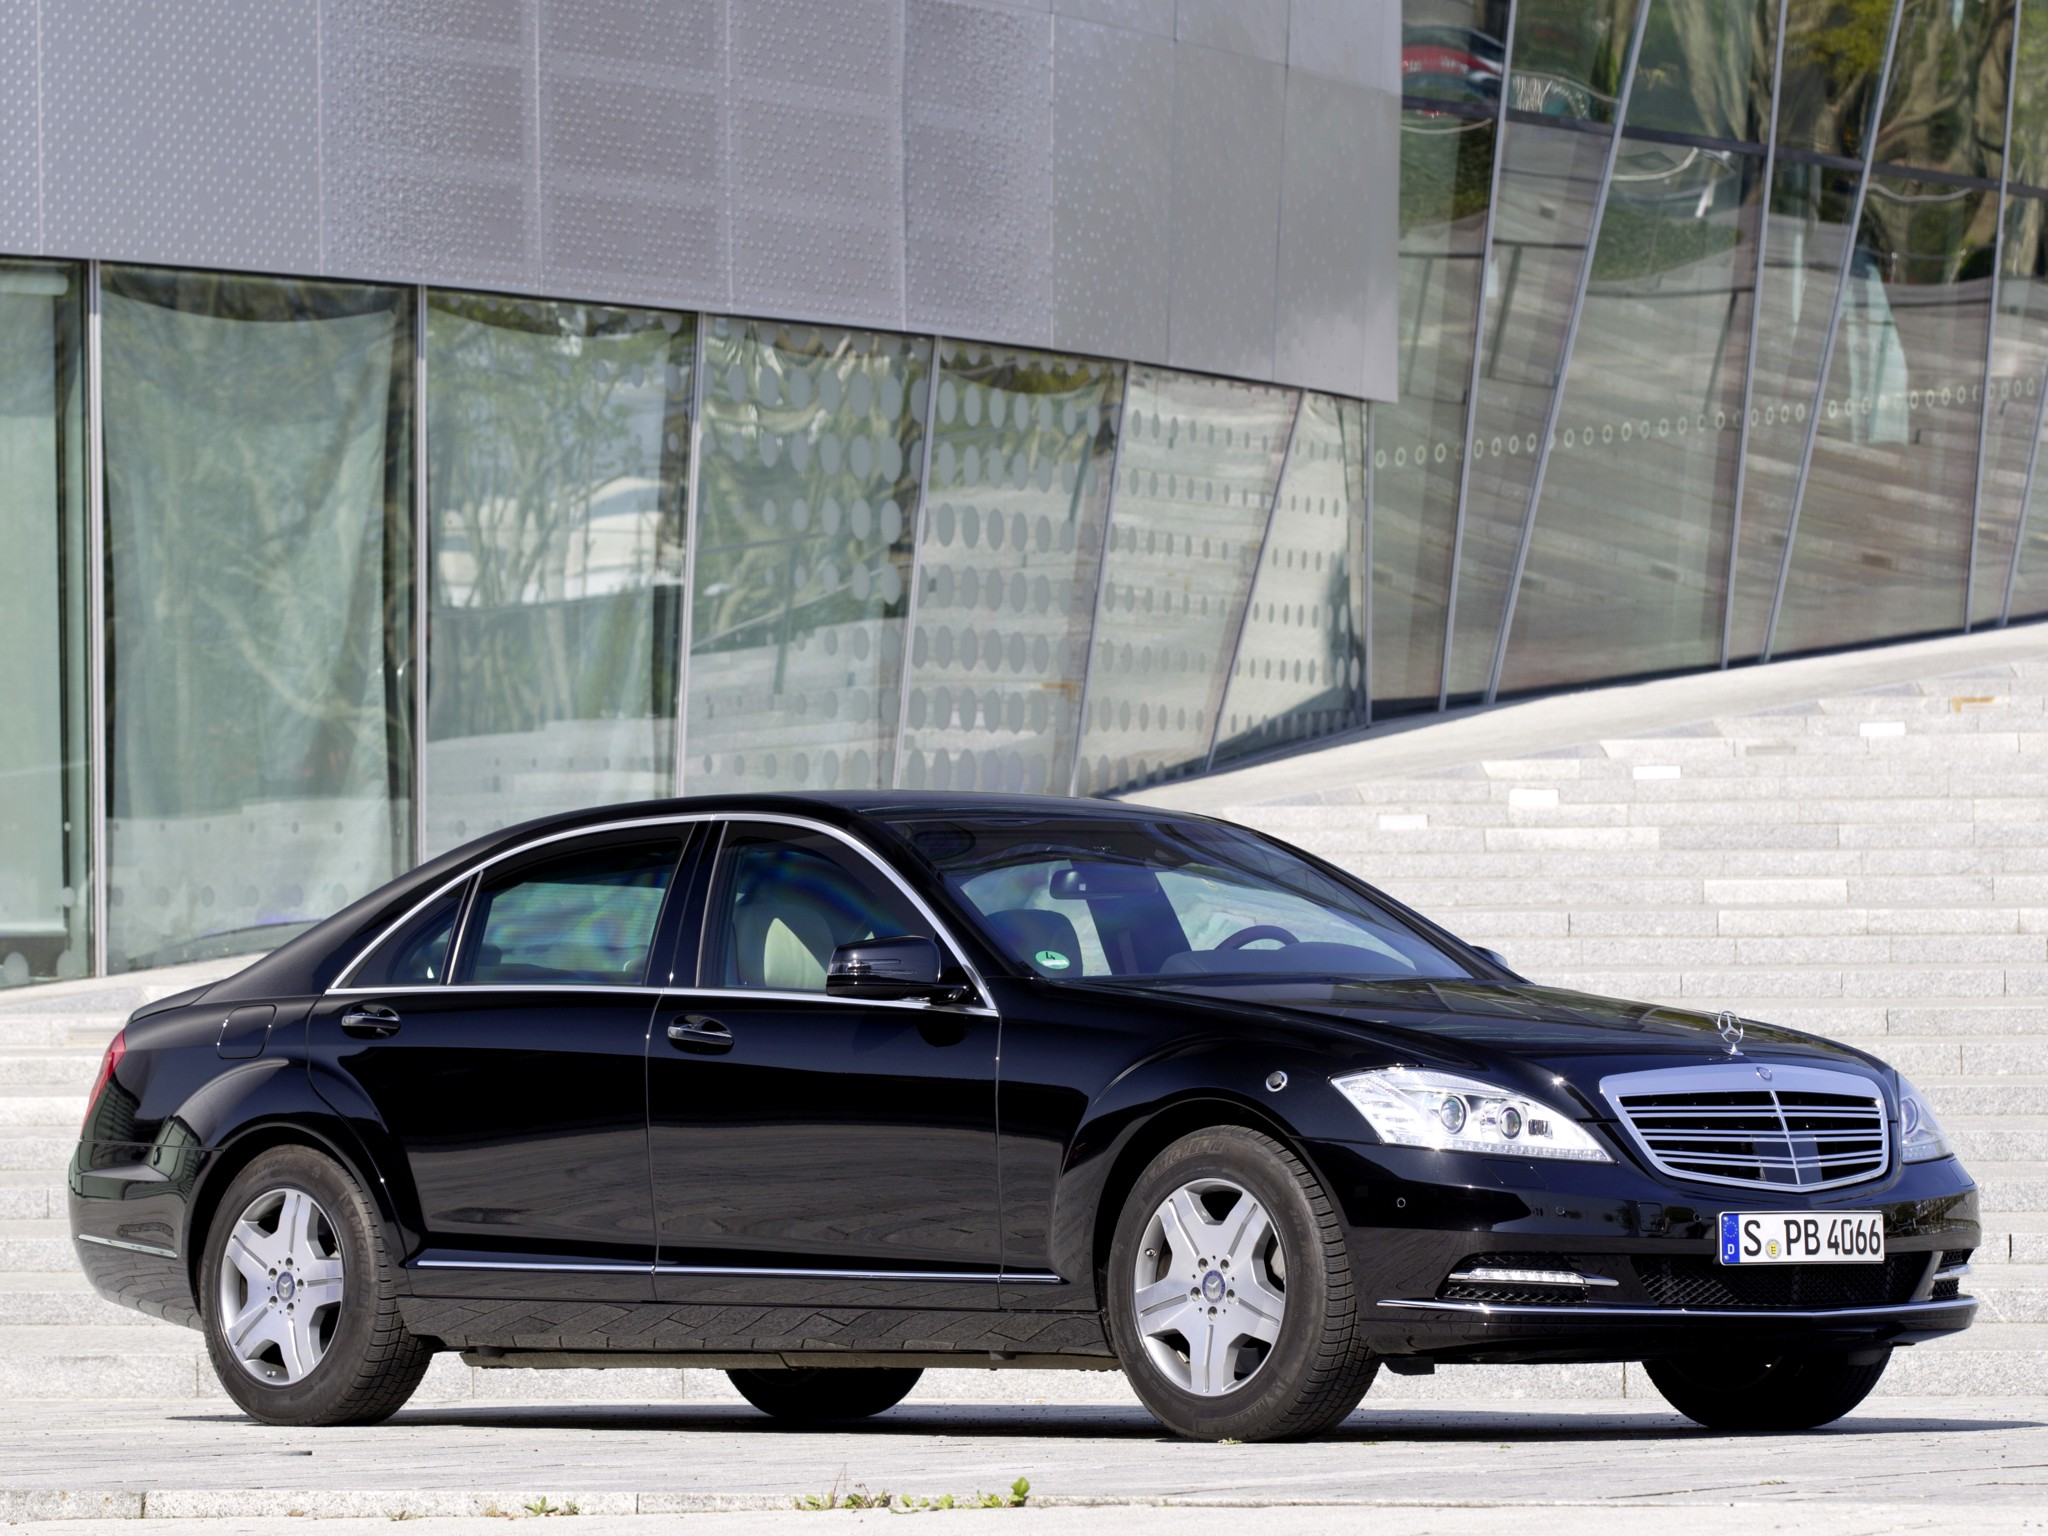 2010 armored mercedes benz s 600 guard w221 luxury g for Mercedes benz armored